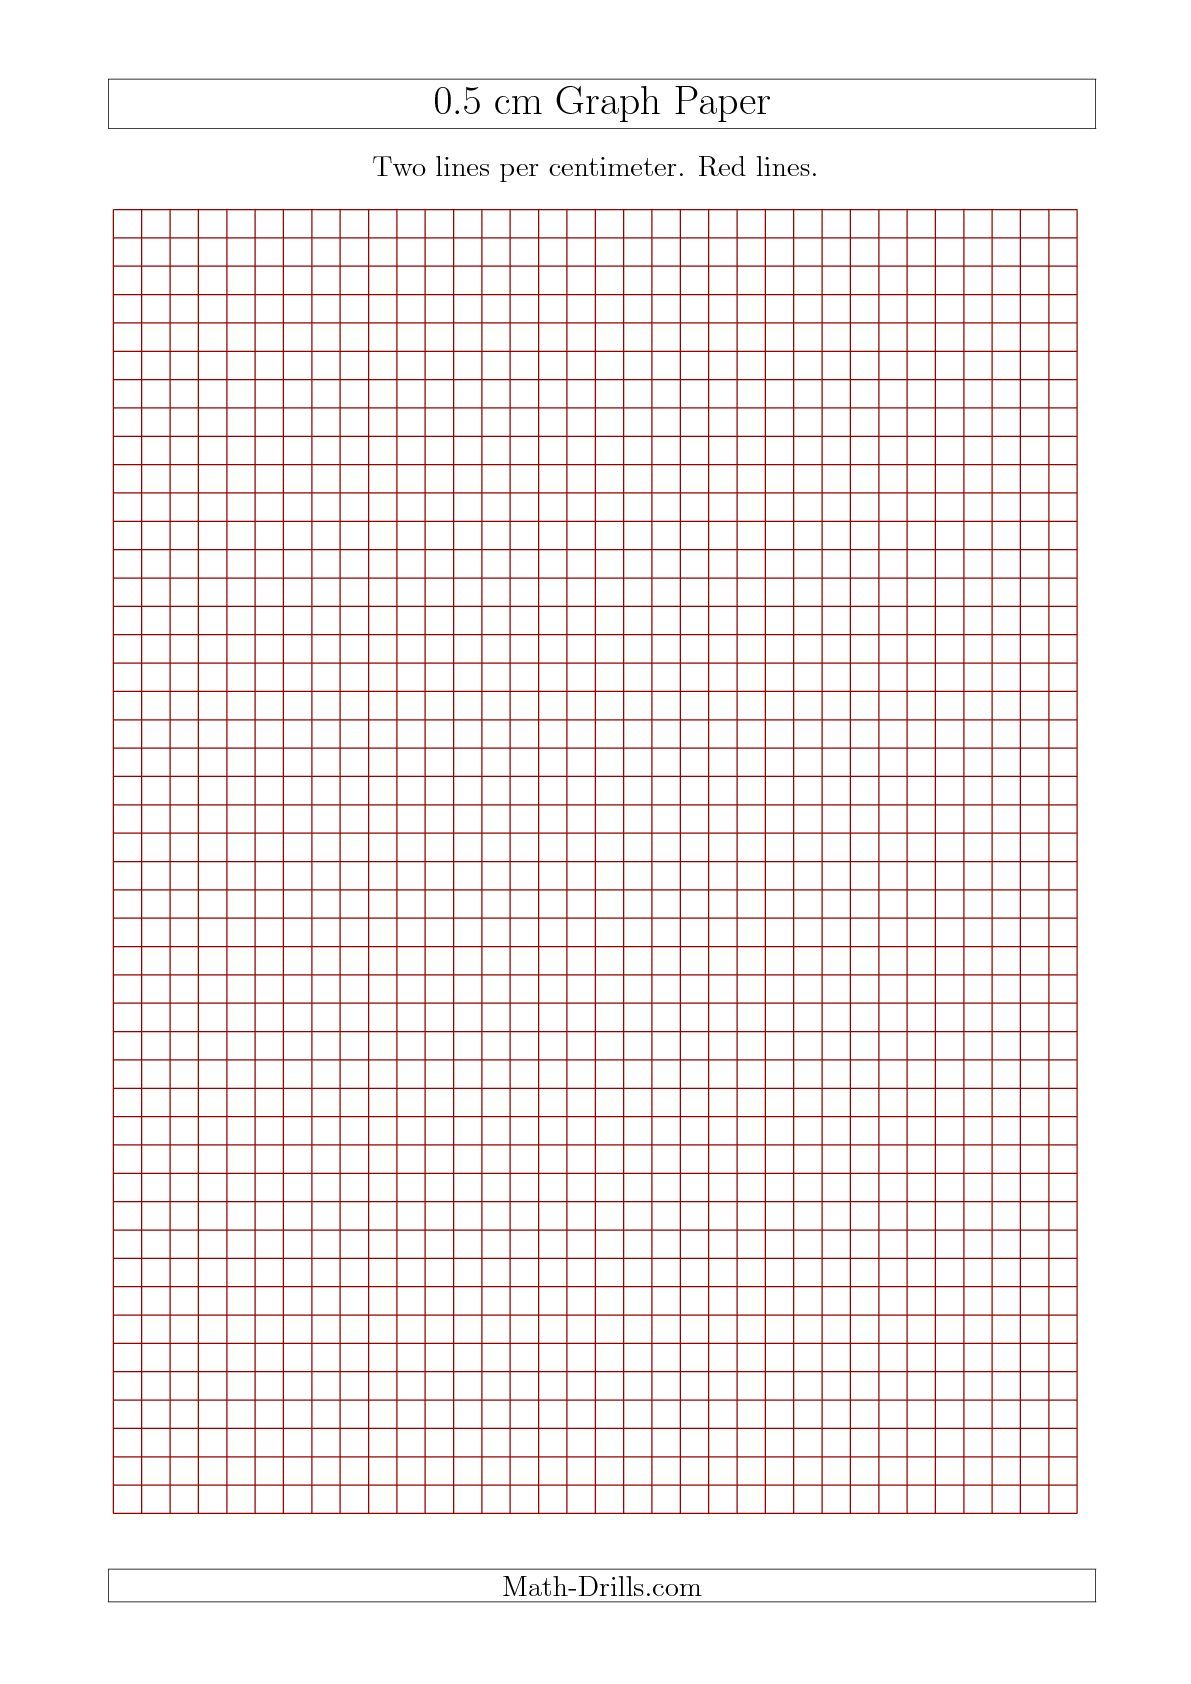 new 2015 09 17 0 5 cm graph paper with red lines a4 size math worksheet freemath new math. Black Bedroom Furniture Sets. Home Design Ideas